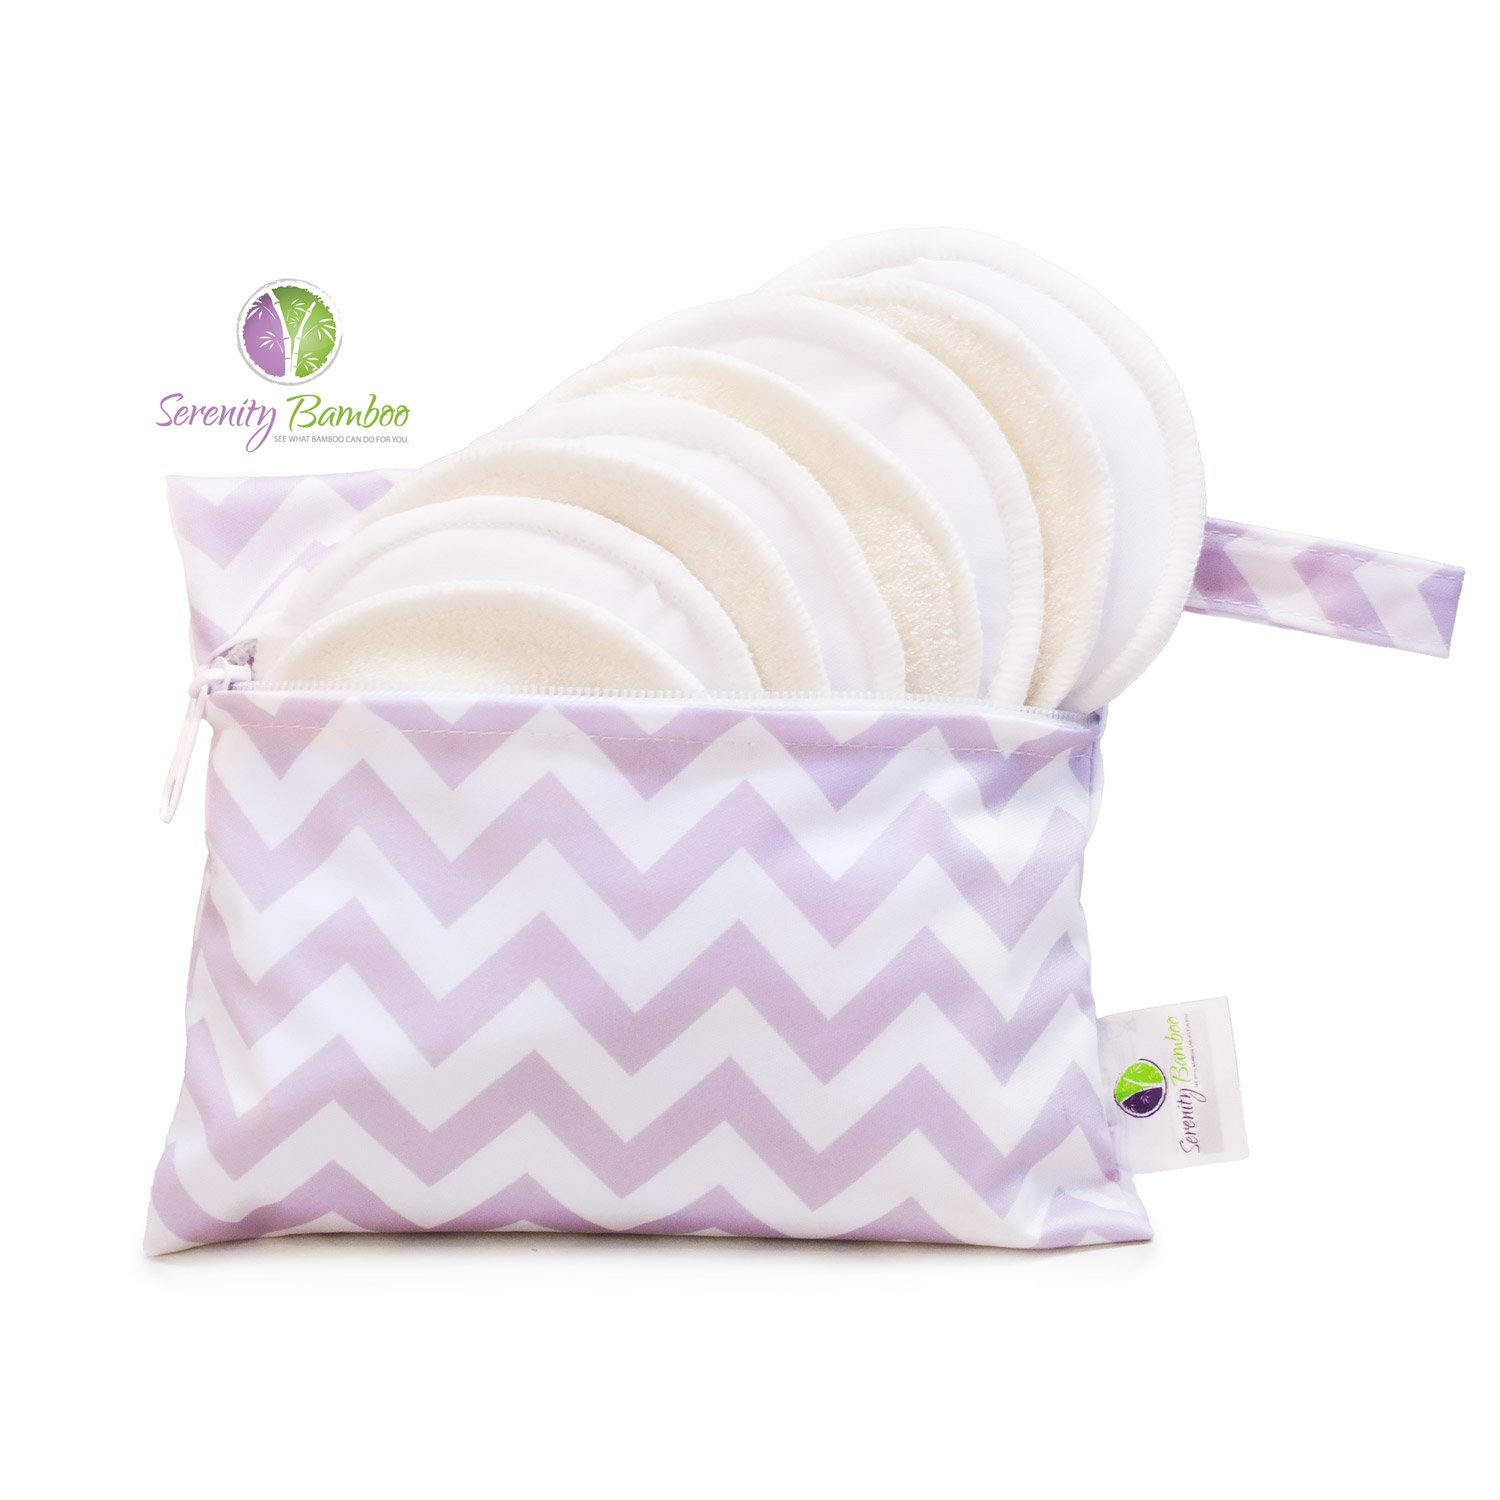 Washable Organic Bamboo Daytime Nursing Pads 8 pack (4 pair) Small Size with Laundry Bag - Natural and Reusable, Ultra Soft, and Super Absorbent for the Ultimate Luxury Breast Pad - By Serenity Bamboo